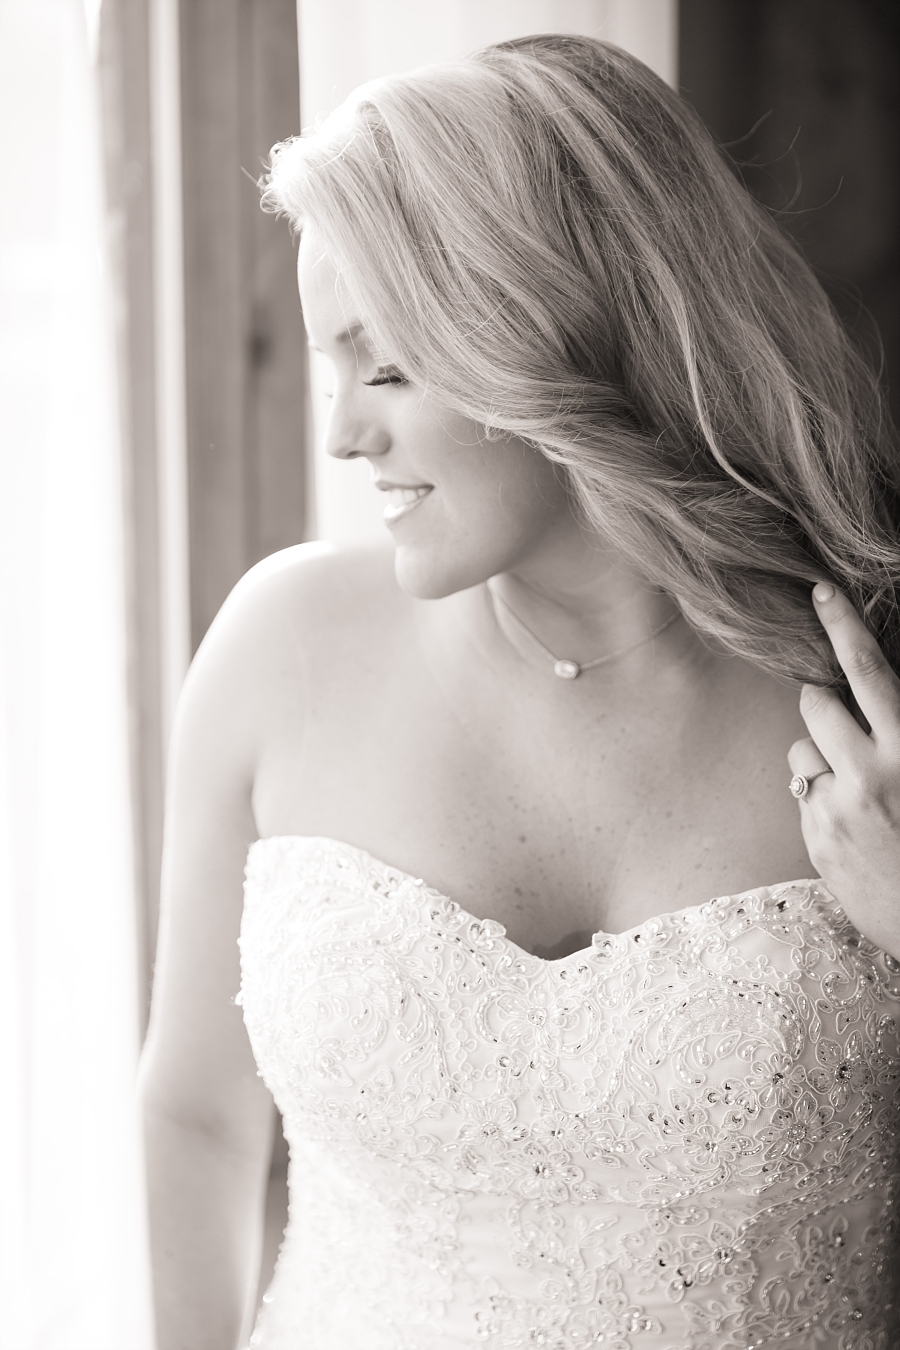 Stacy-Anderson-Photography-Balmorhea-Tomball-Wedding-Photographer_0003.jpg